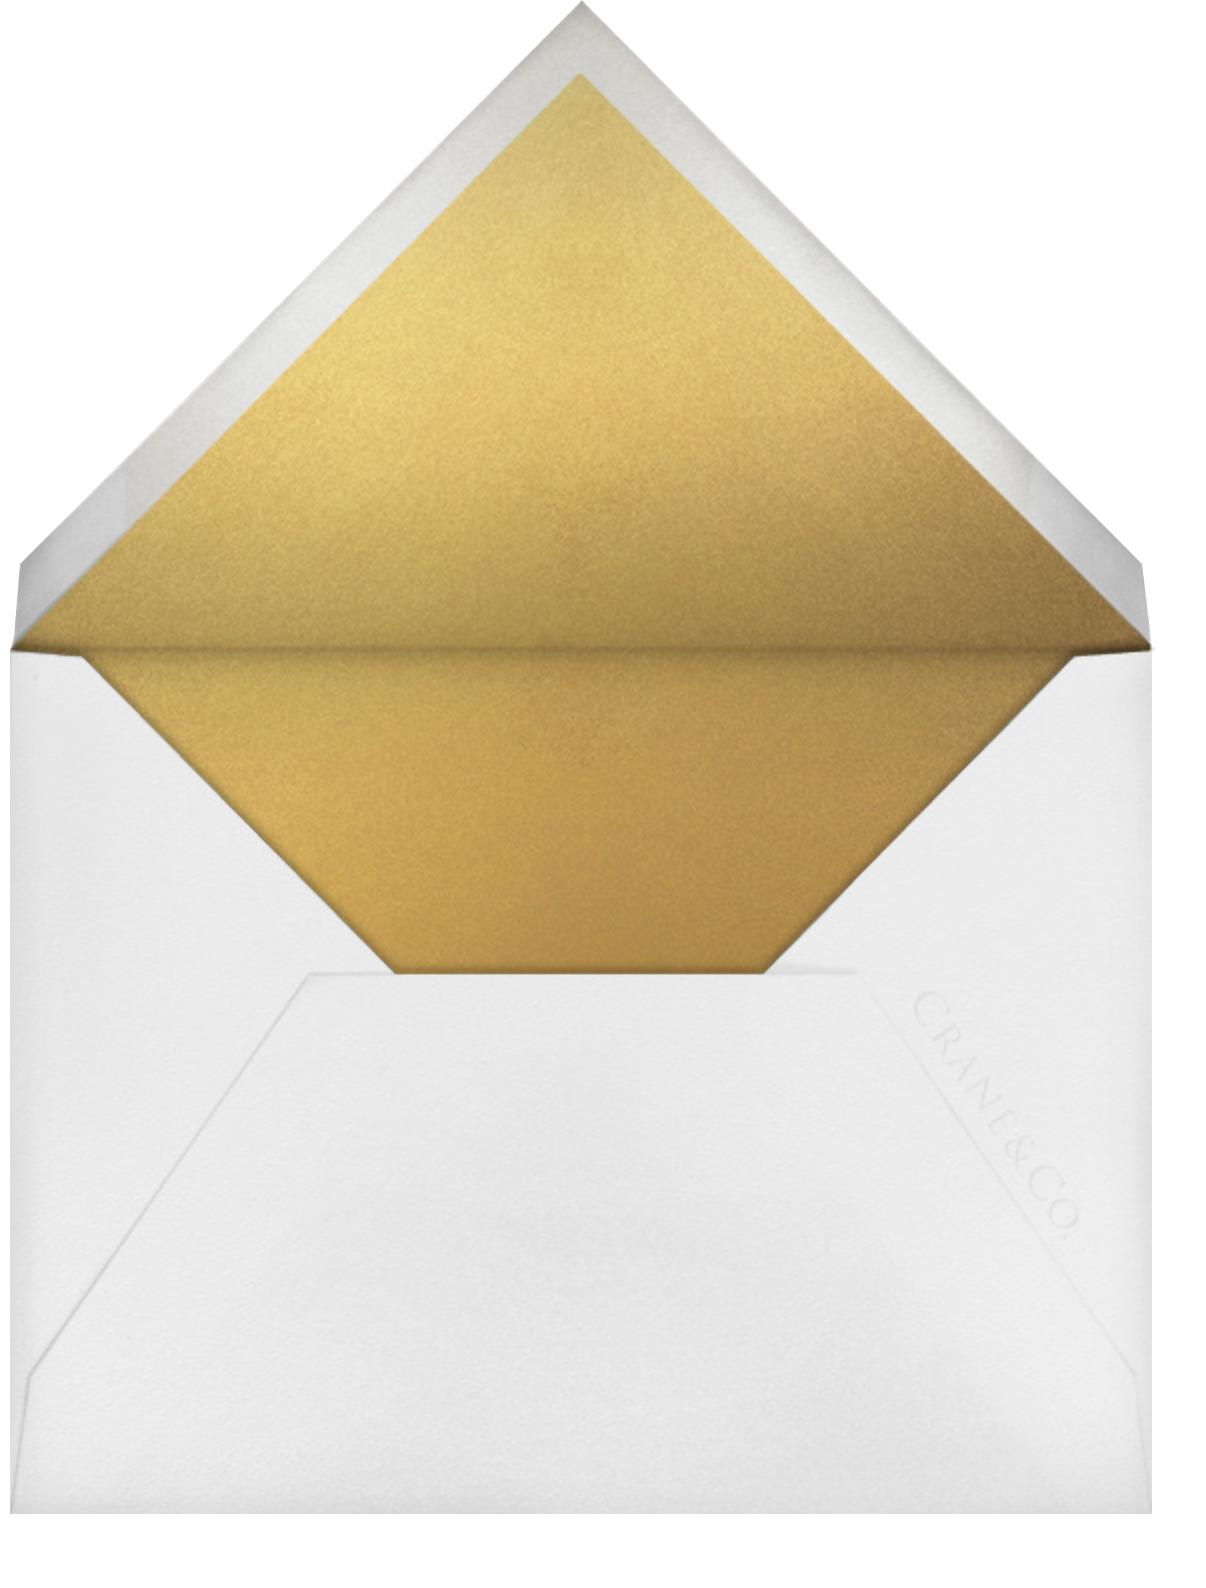 Escalier (Greeting) - Ivory and Gold - Paperless Post - Holiday cards - envelope back